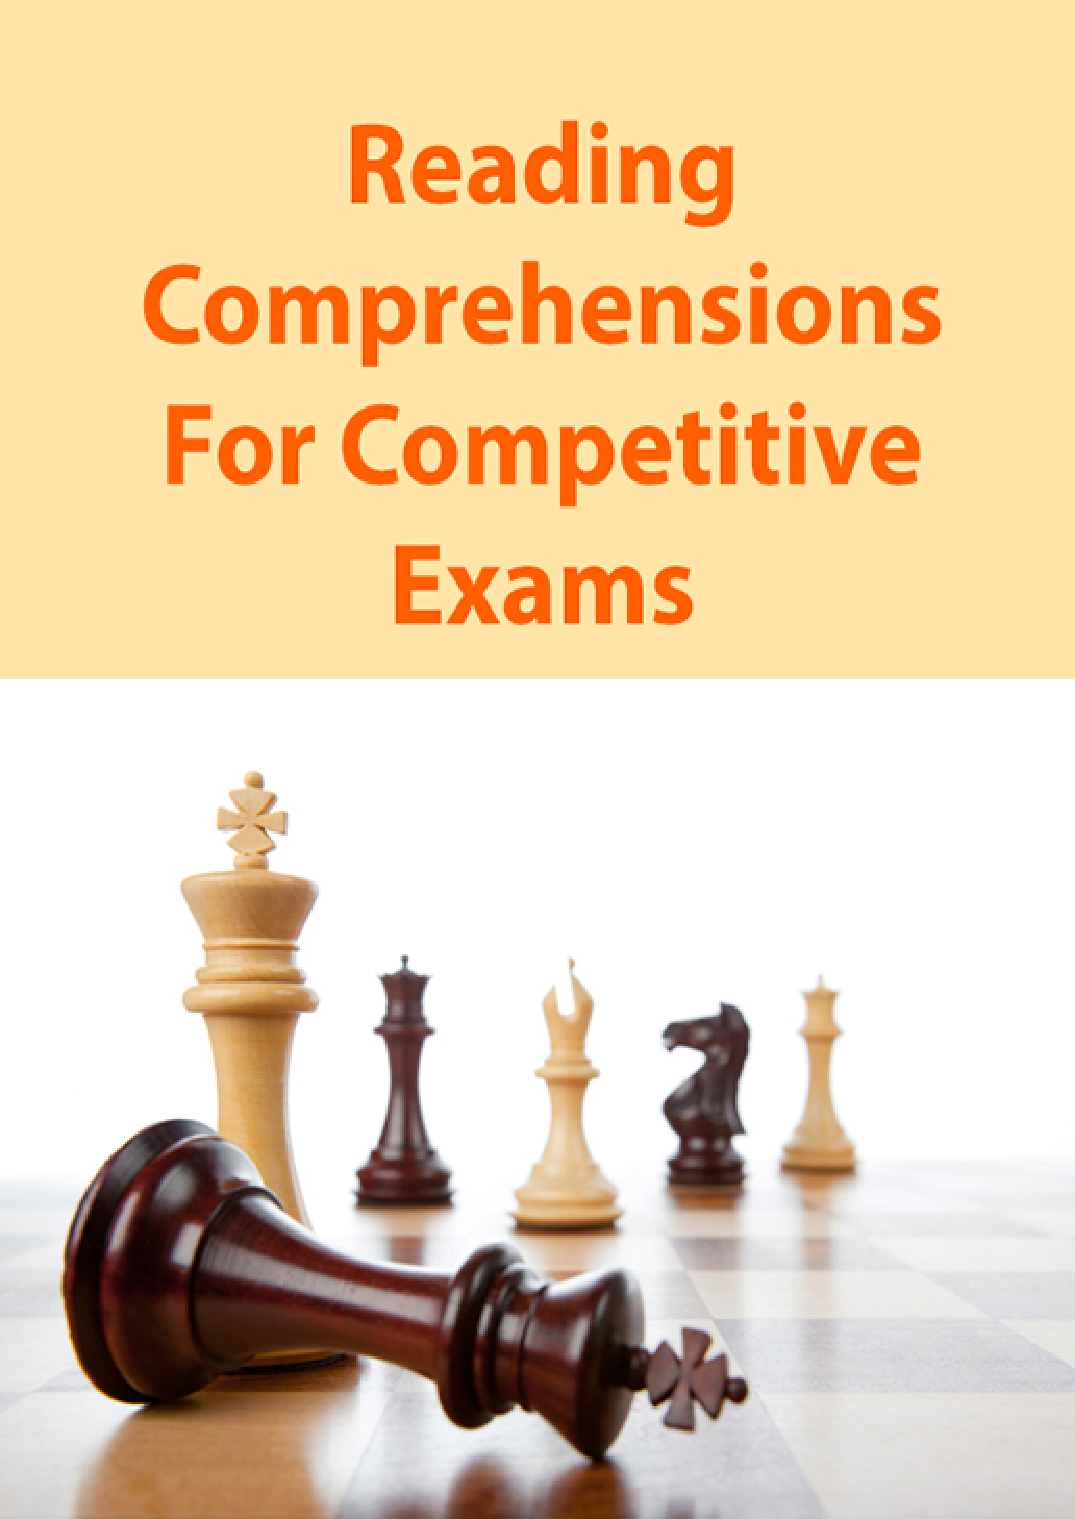 Reading Comprehensions For Competitive Exams - Page 1